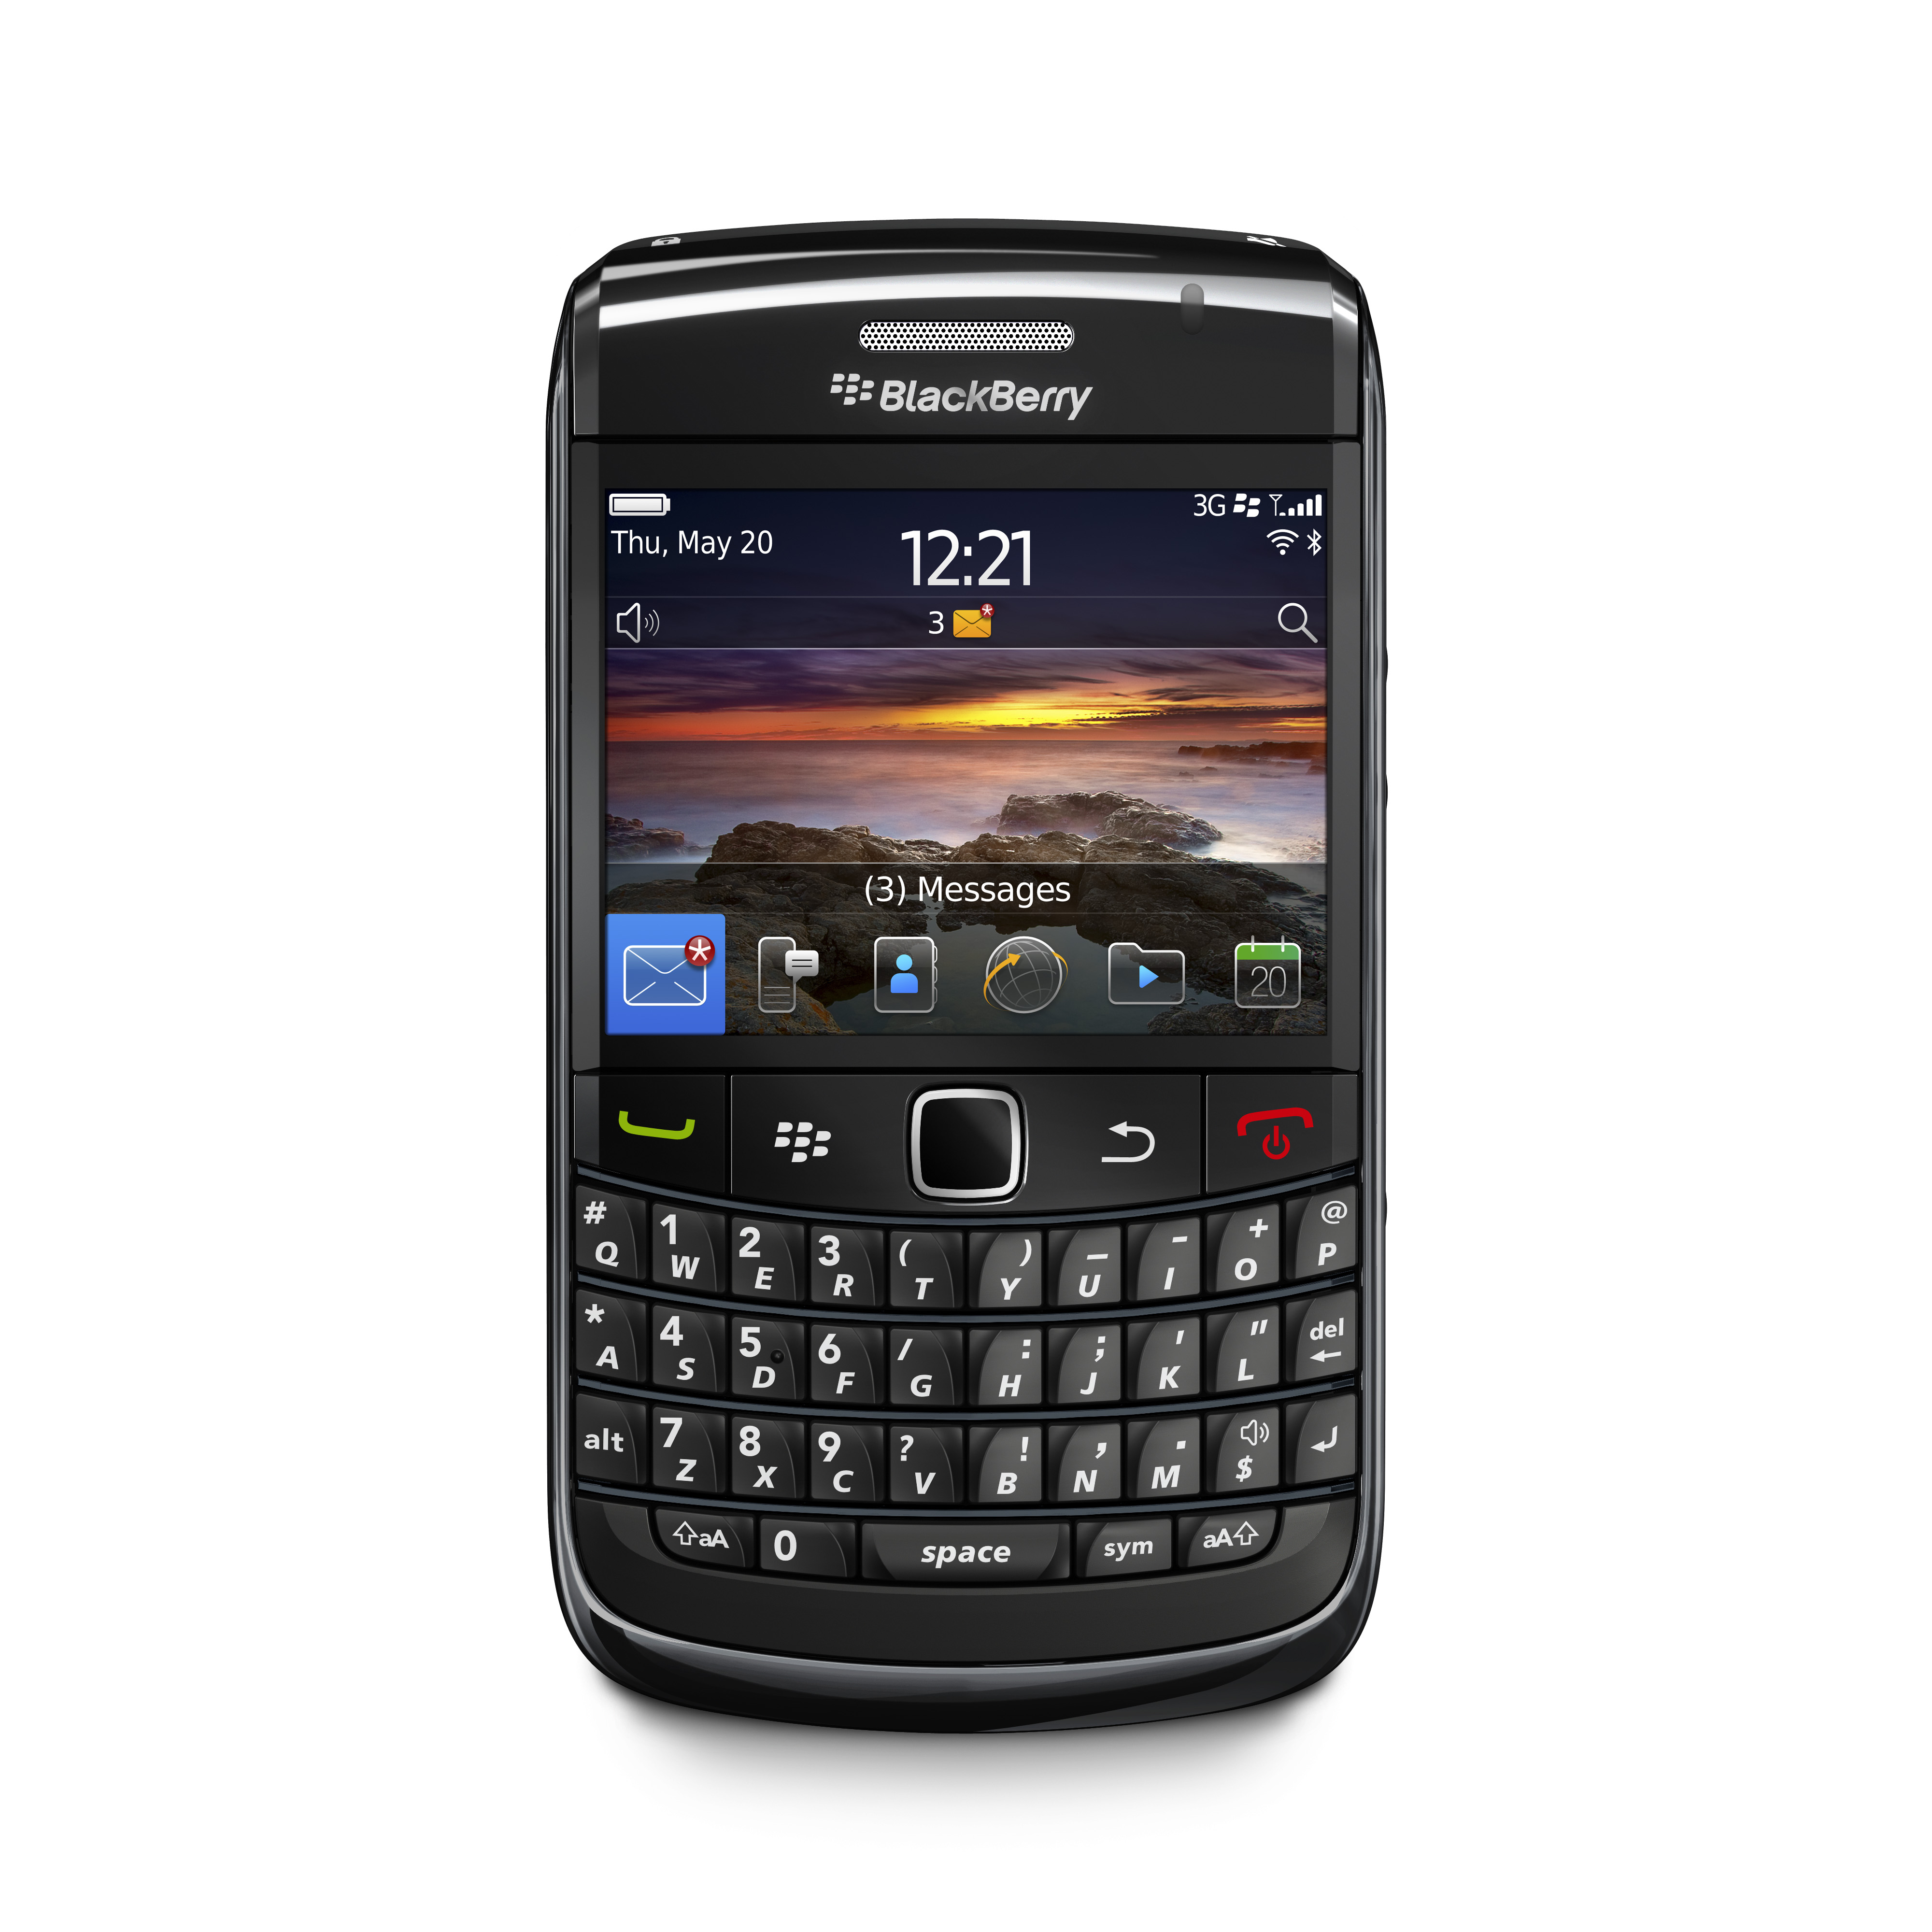 rim makes blackberry bold 9780 official available worldwide in november rh thenextweb com BlackBerry Bold 9790 blackberry bold 9780 user manual